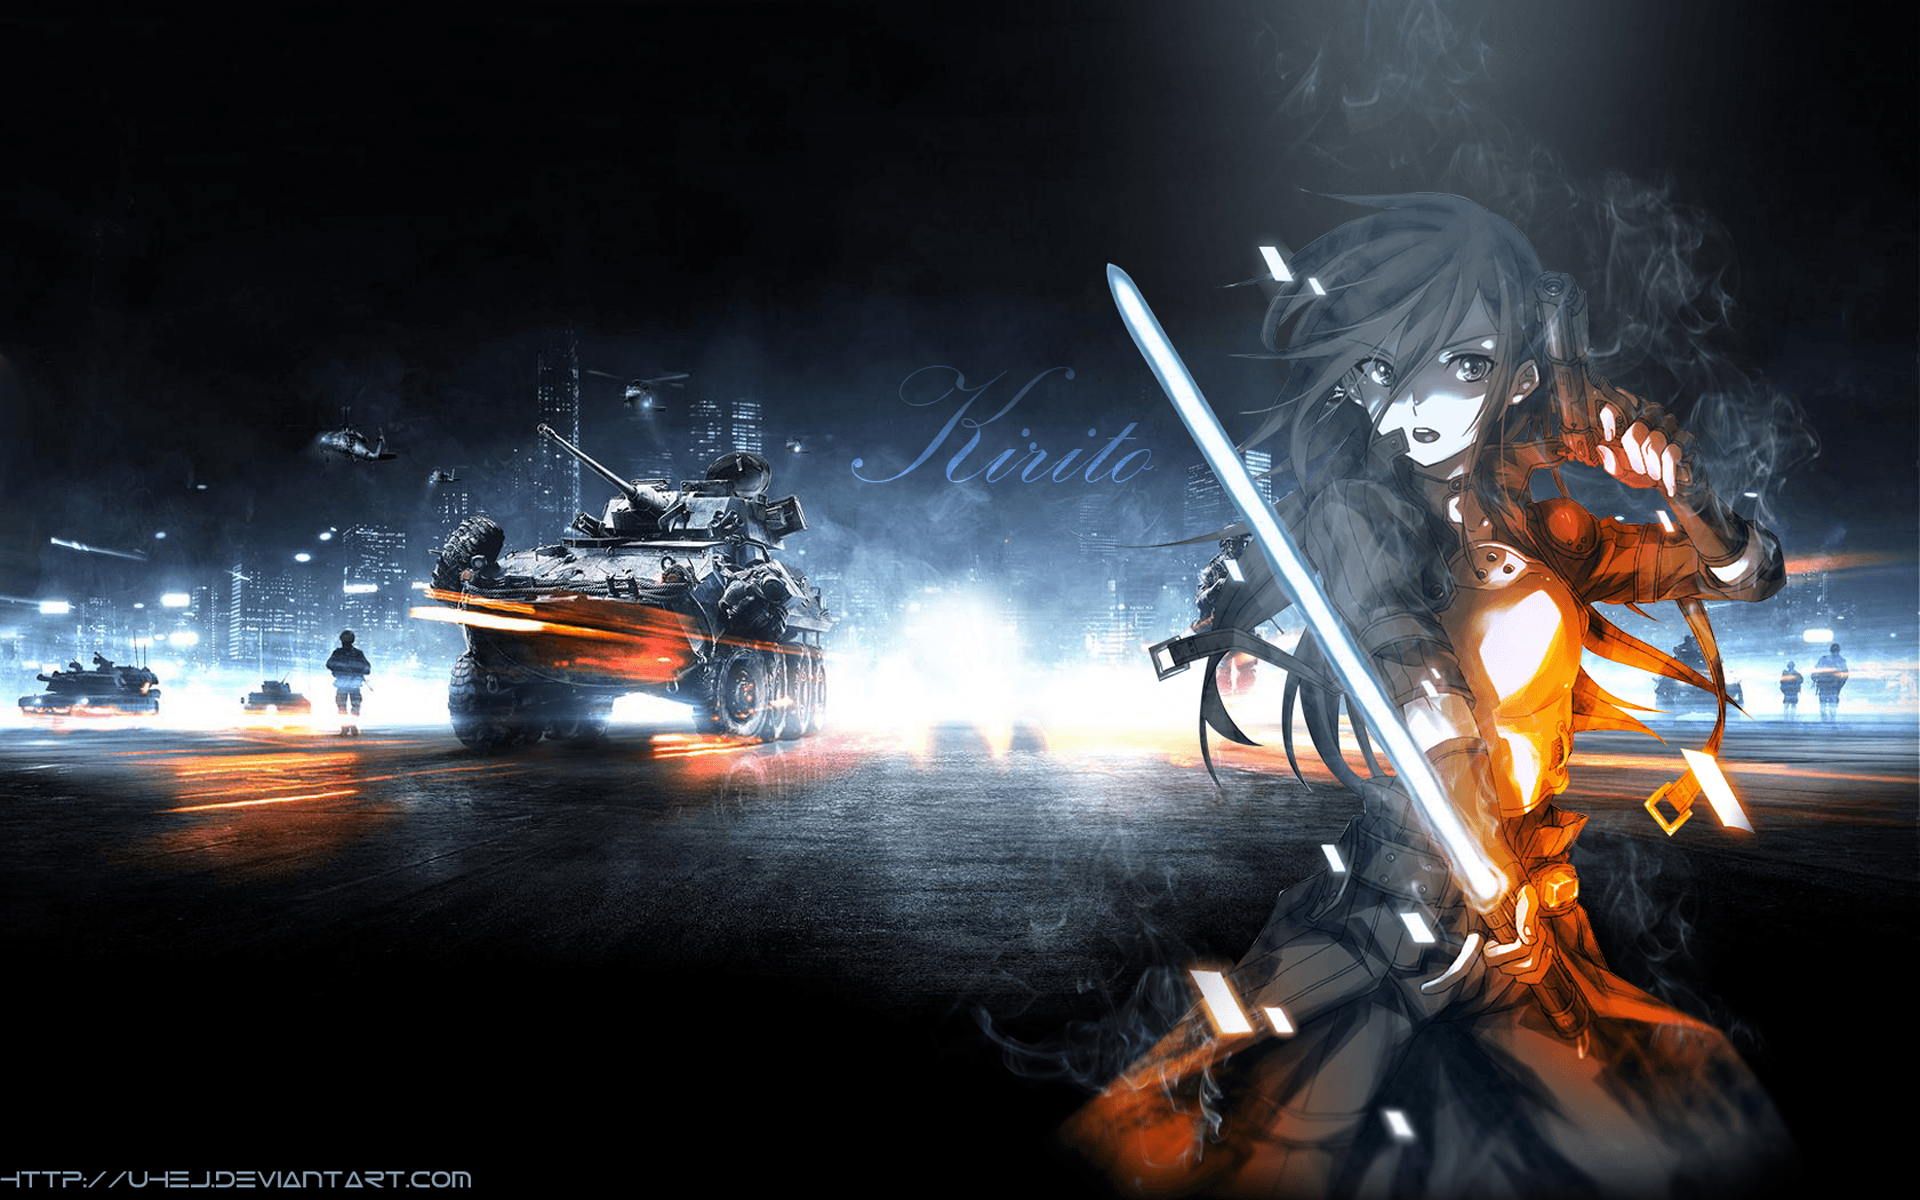 Good Wallpaper High Quality Sao - wp1840366  Picture_15480.png